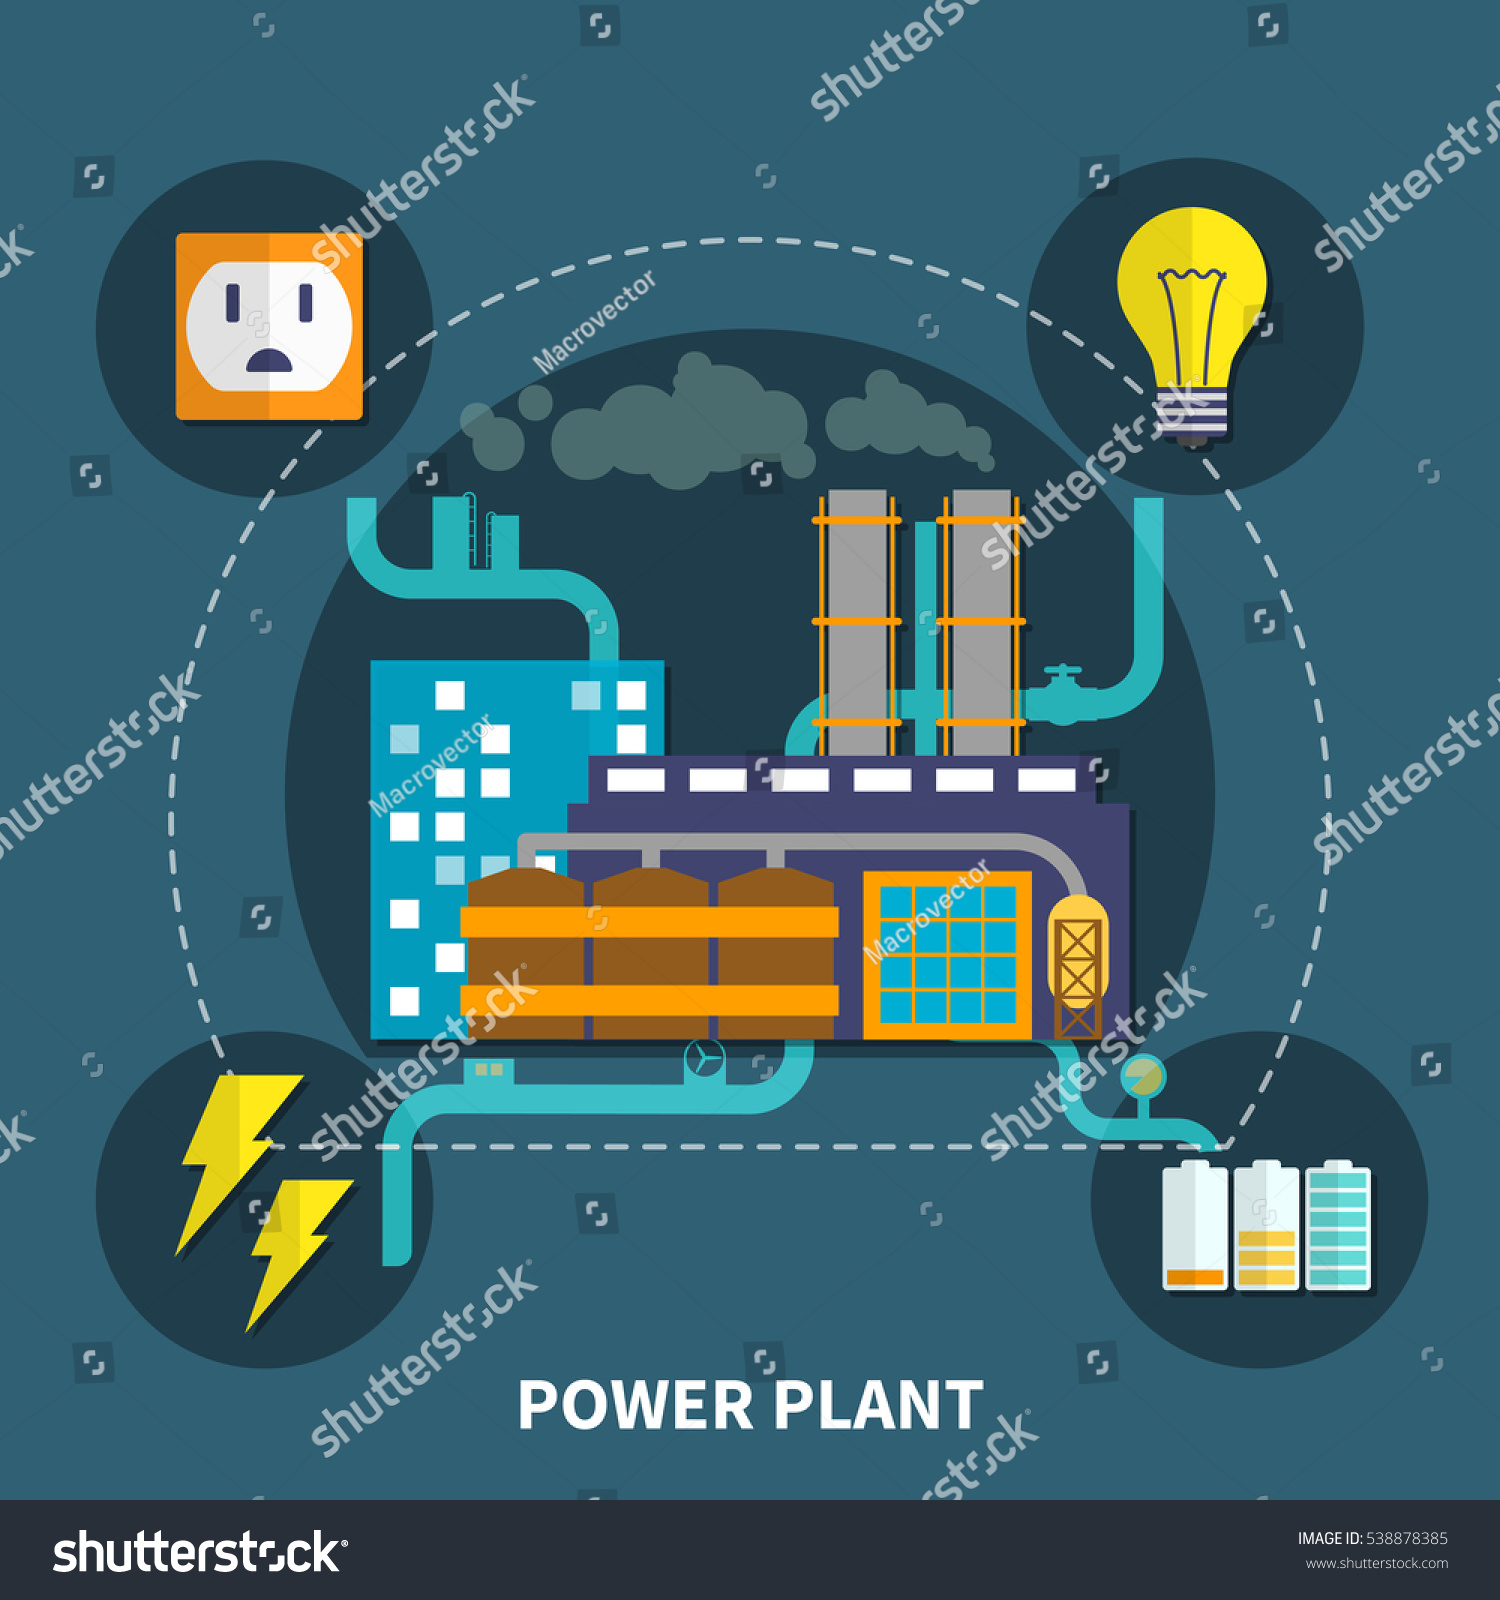 Power Plant Layout Bulb Other Abstract Stock Vector Royalty Free Diagram Pictures With And Illustration